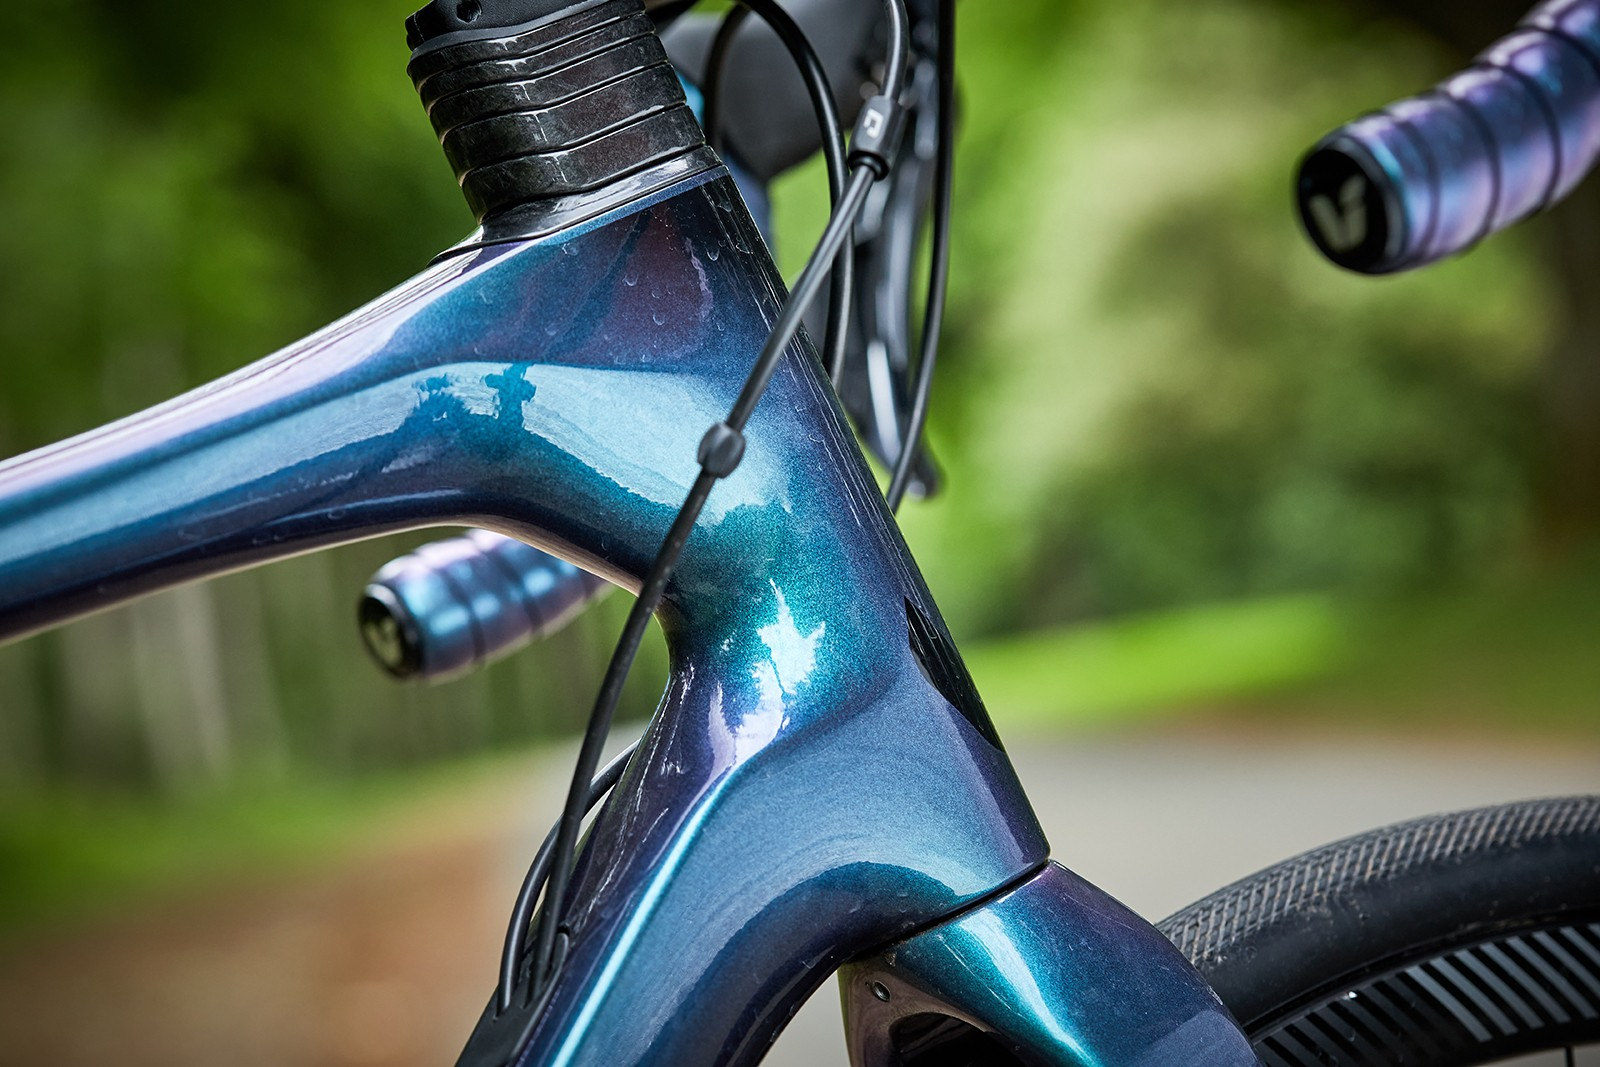 Liv designs its bikes based solely on data from female riders